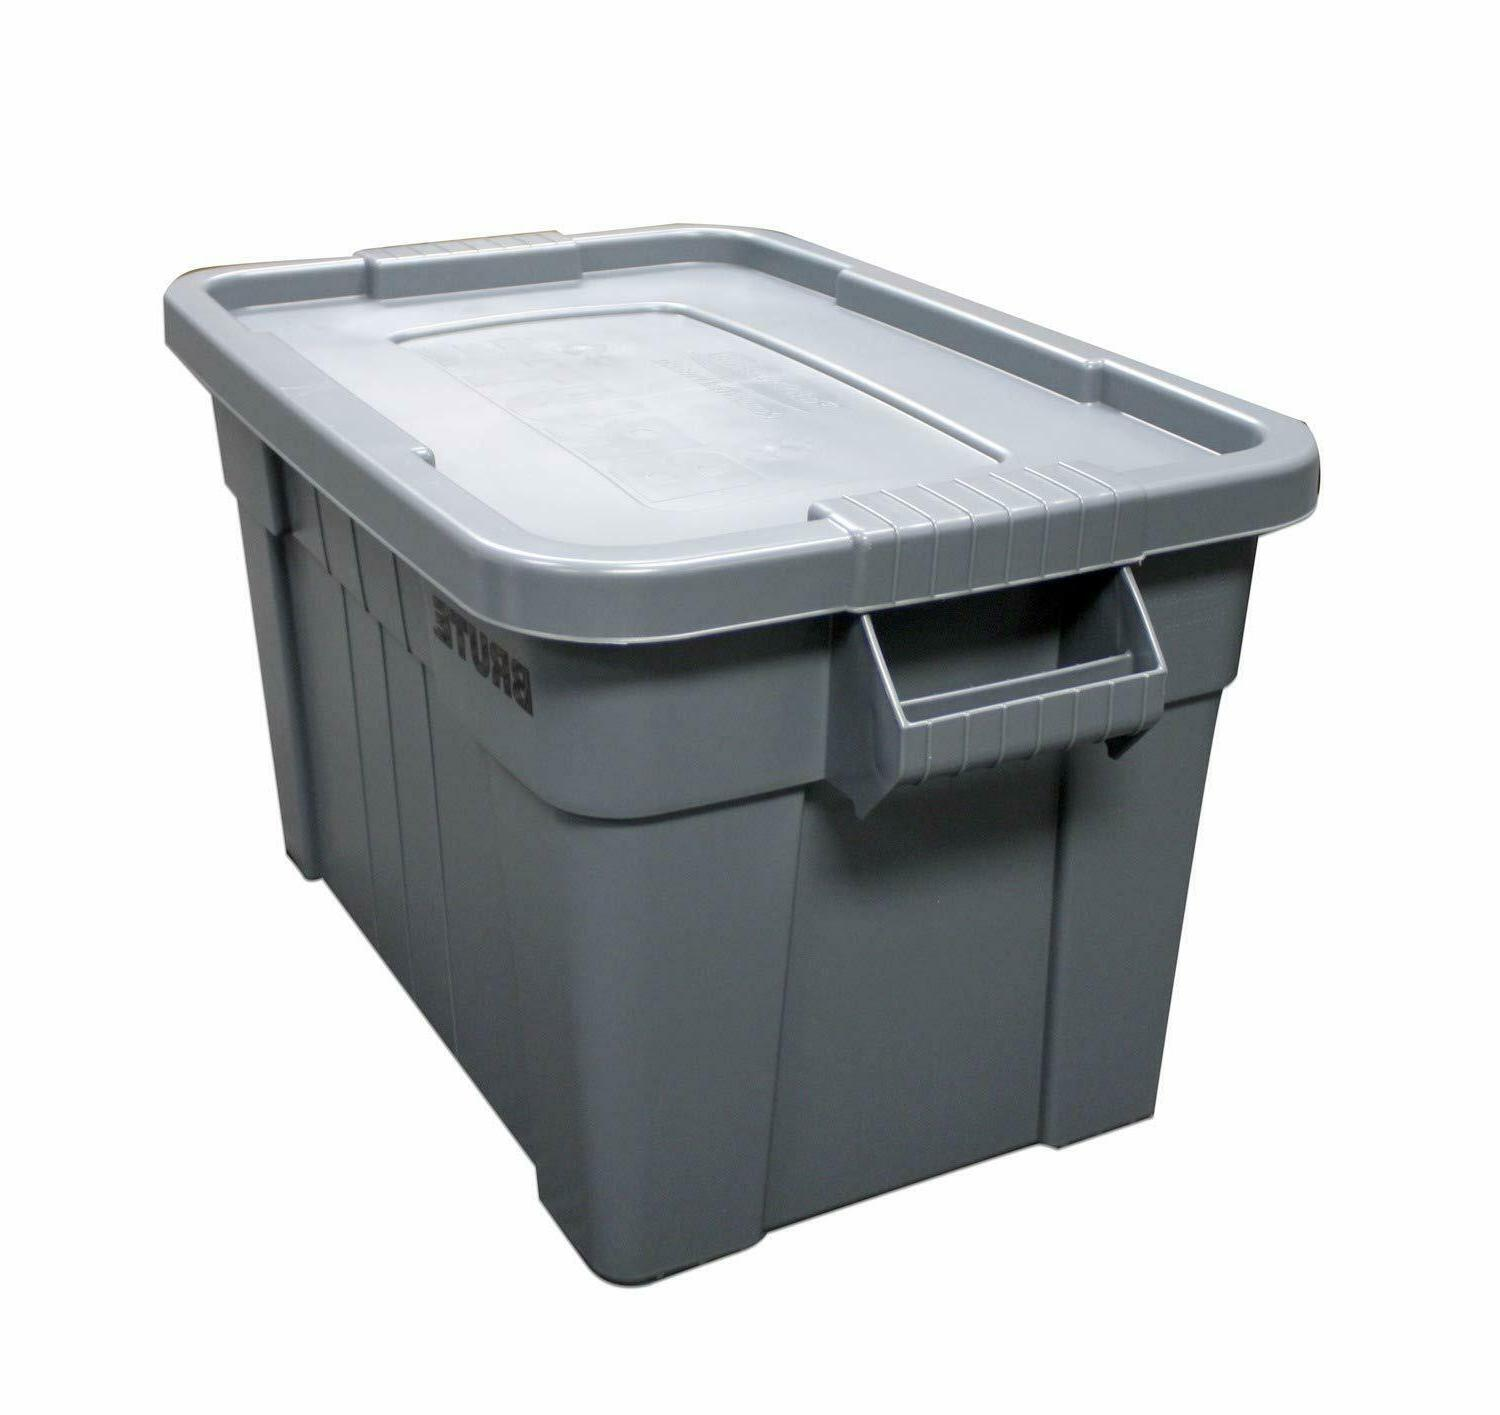 Rubbermaid Products Tote with Lid, 20-Gallon,